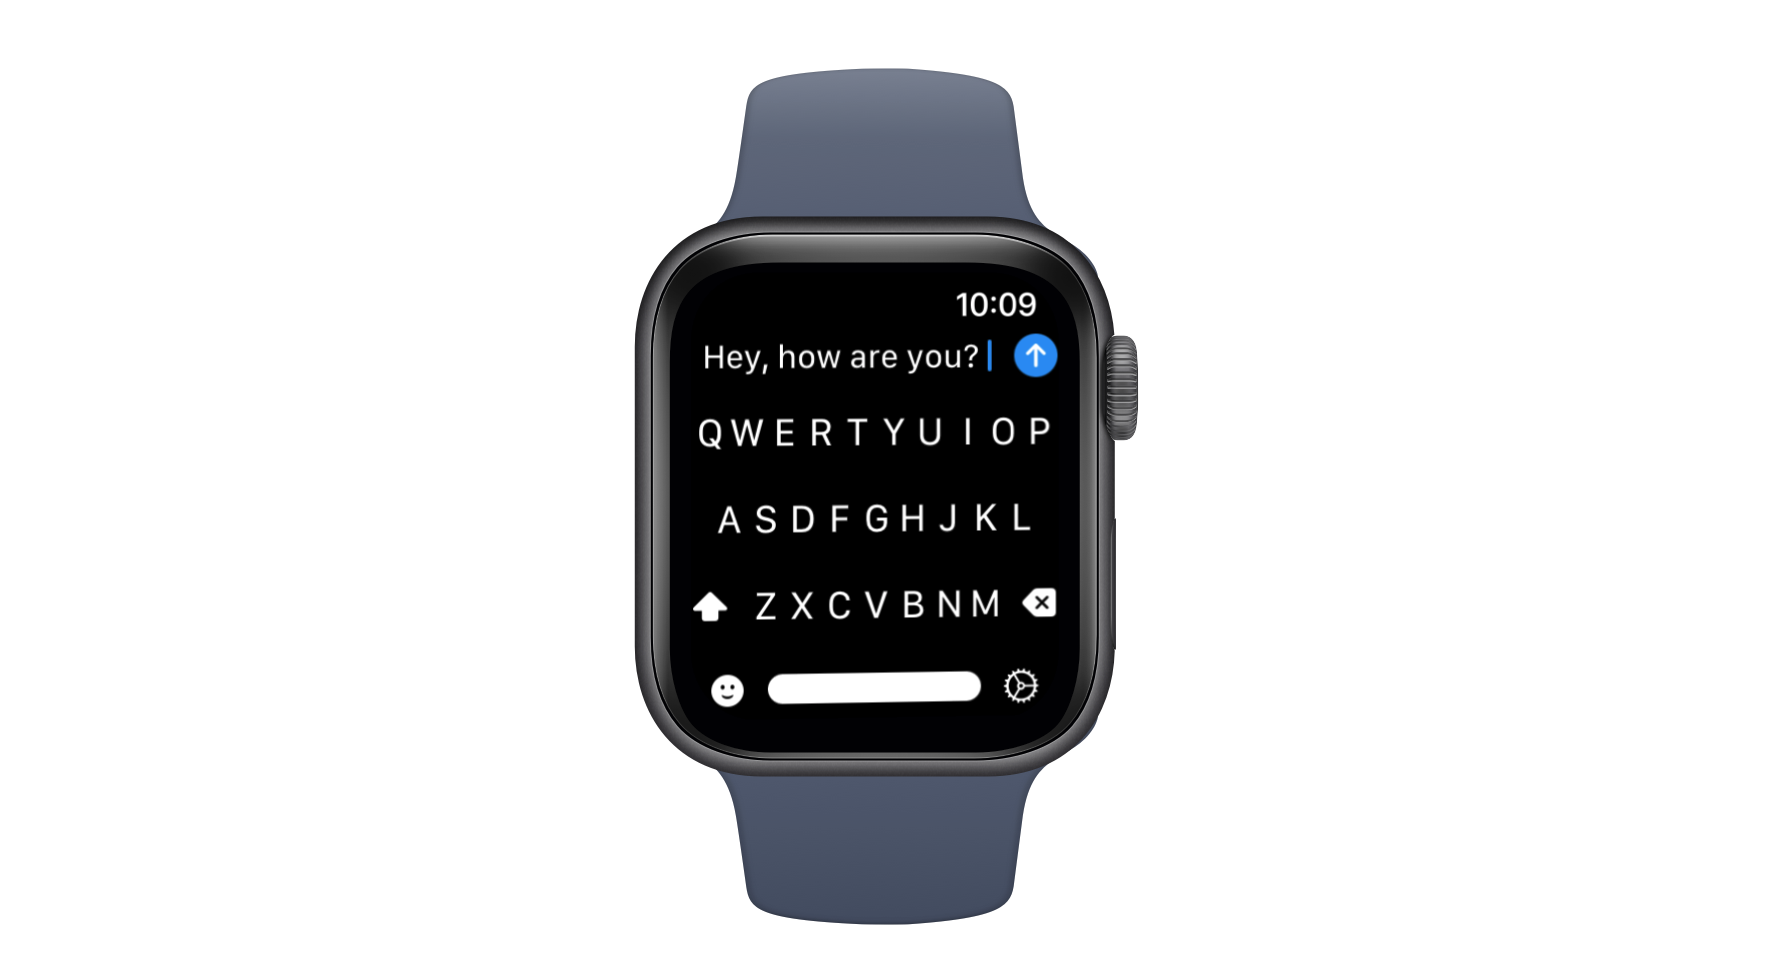 Shift Keyboard for Apple Watch Adds New Features -